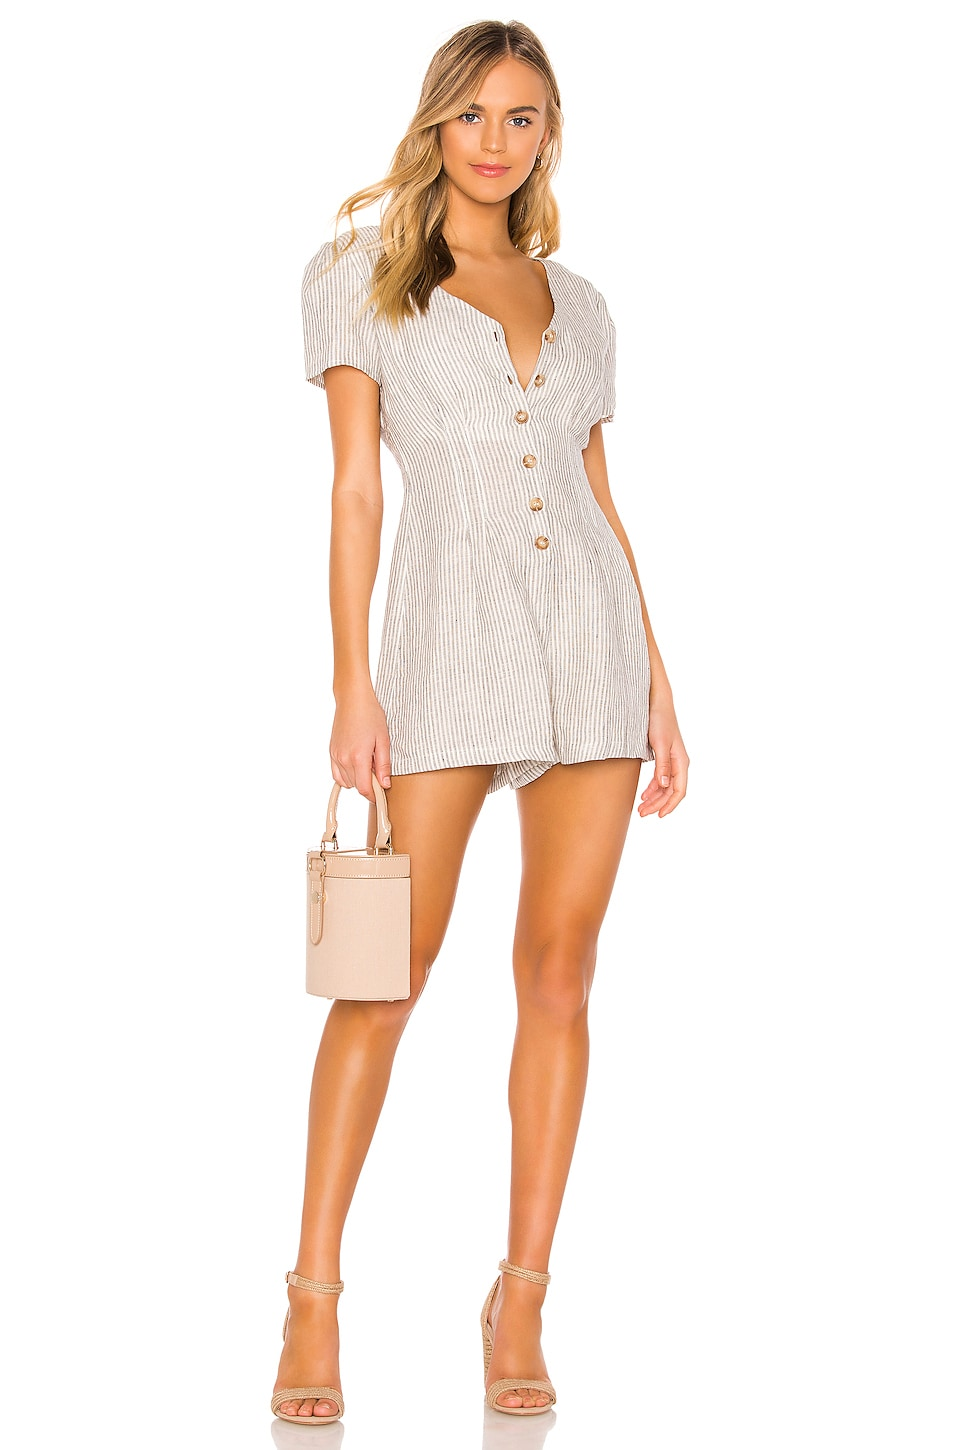 HEARTLOOM Kate Romper in Eggshell